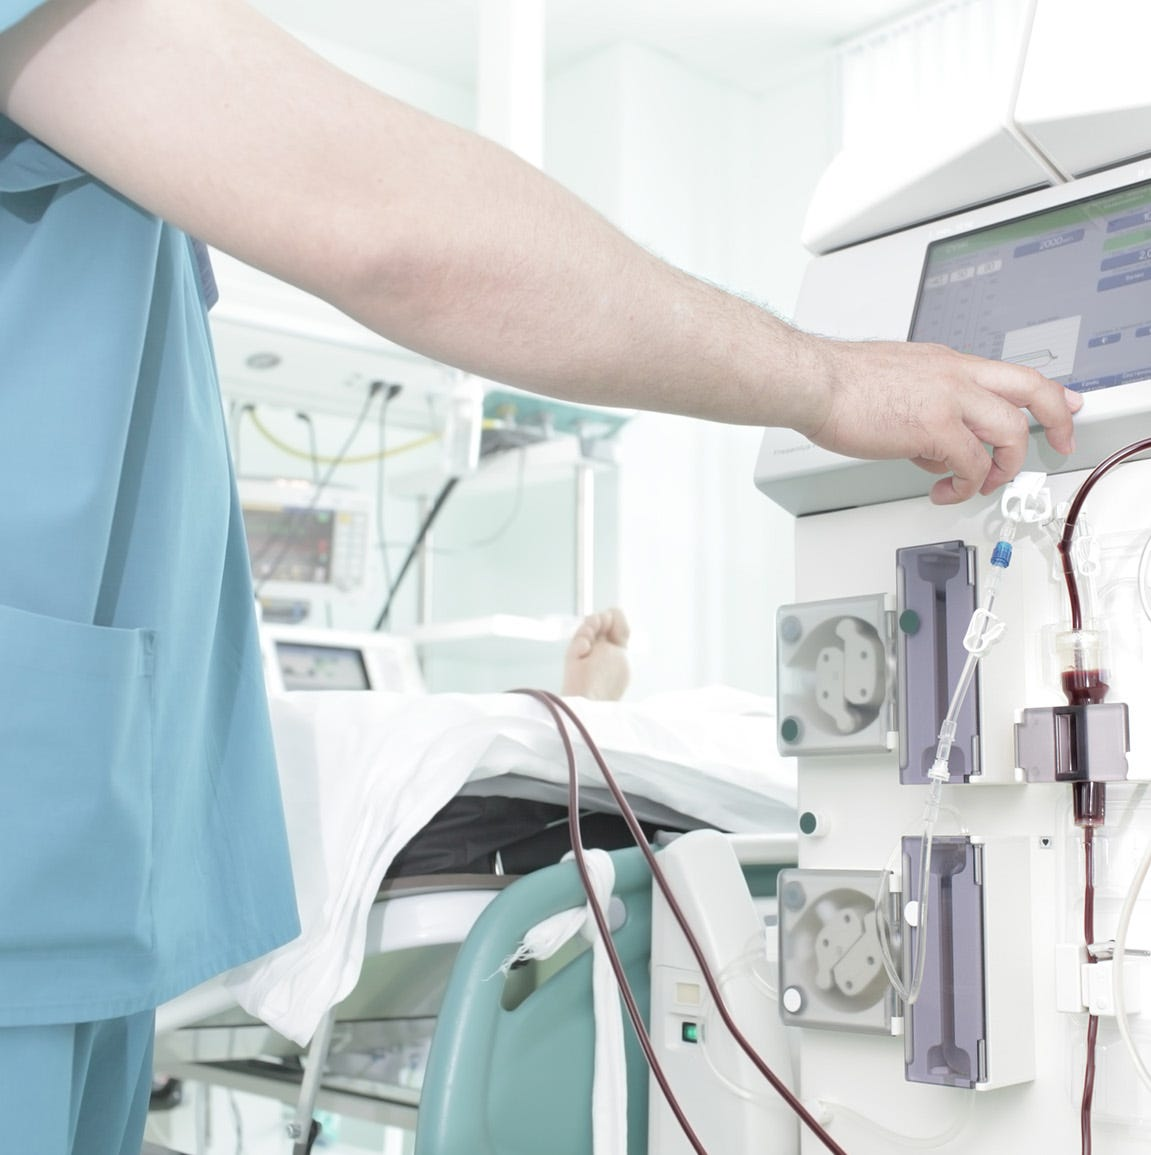 Health: Listening to older patients who want to stop dialysis